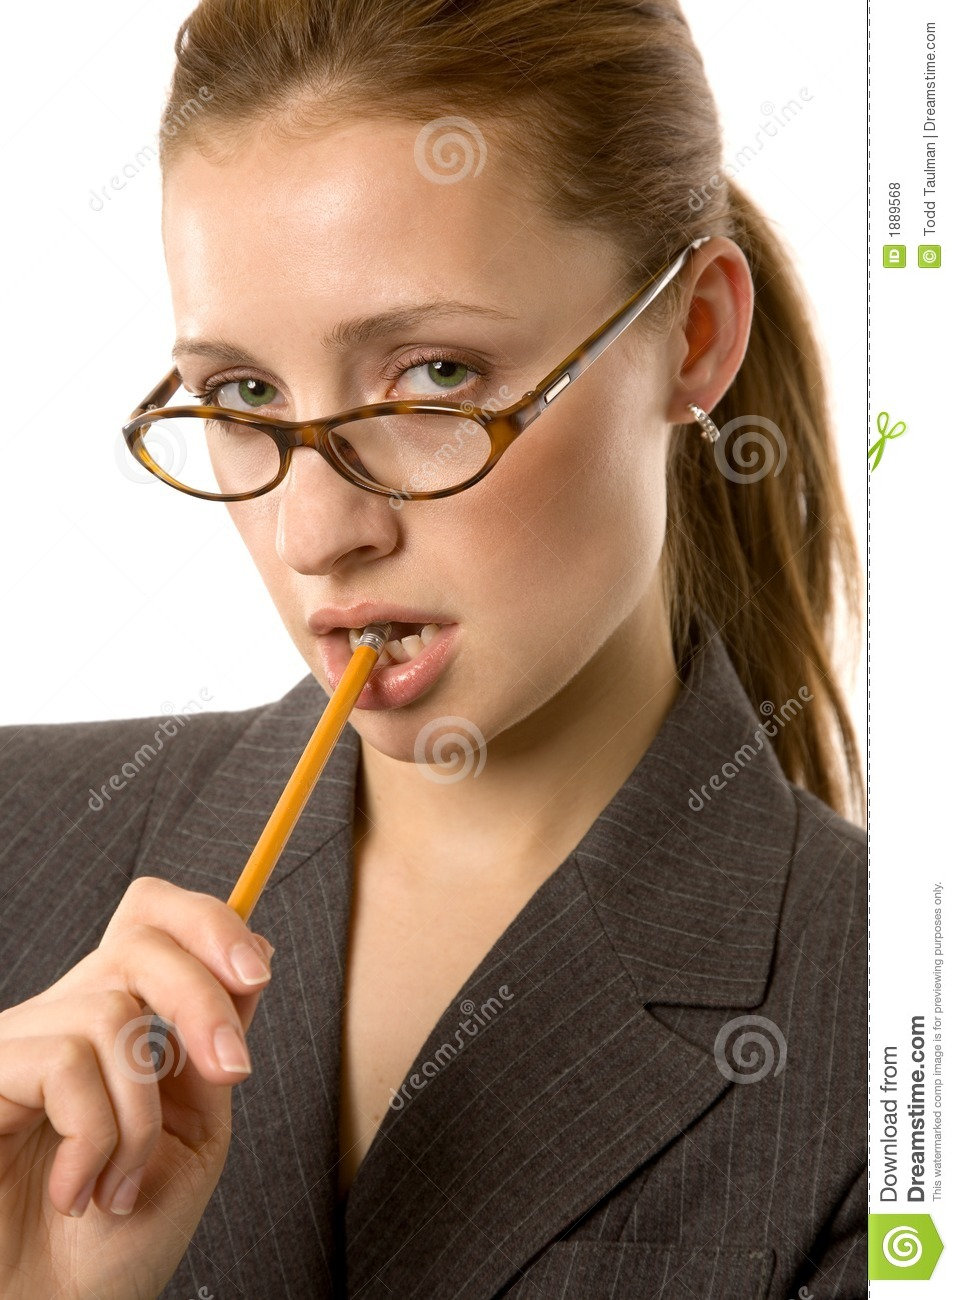 biting on a pencil stock photo image of attractive beauty 1889568